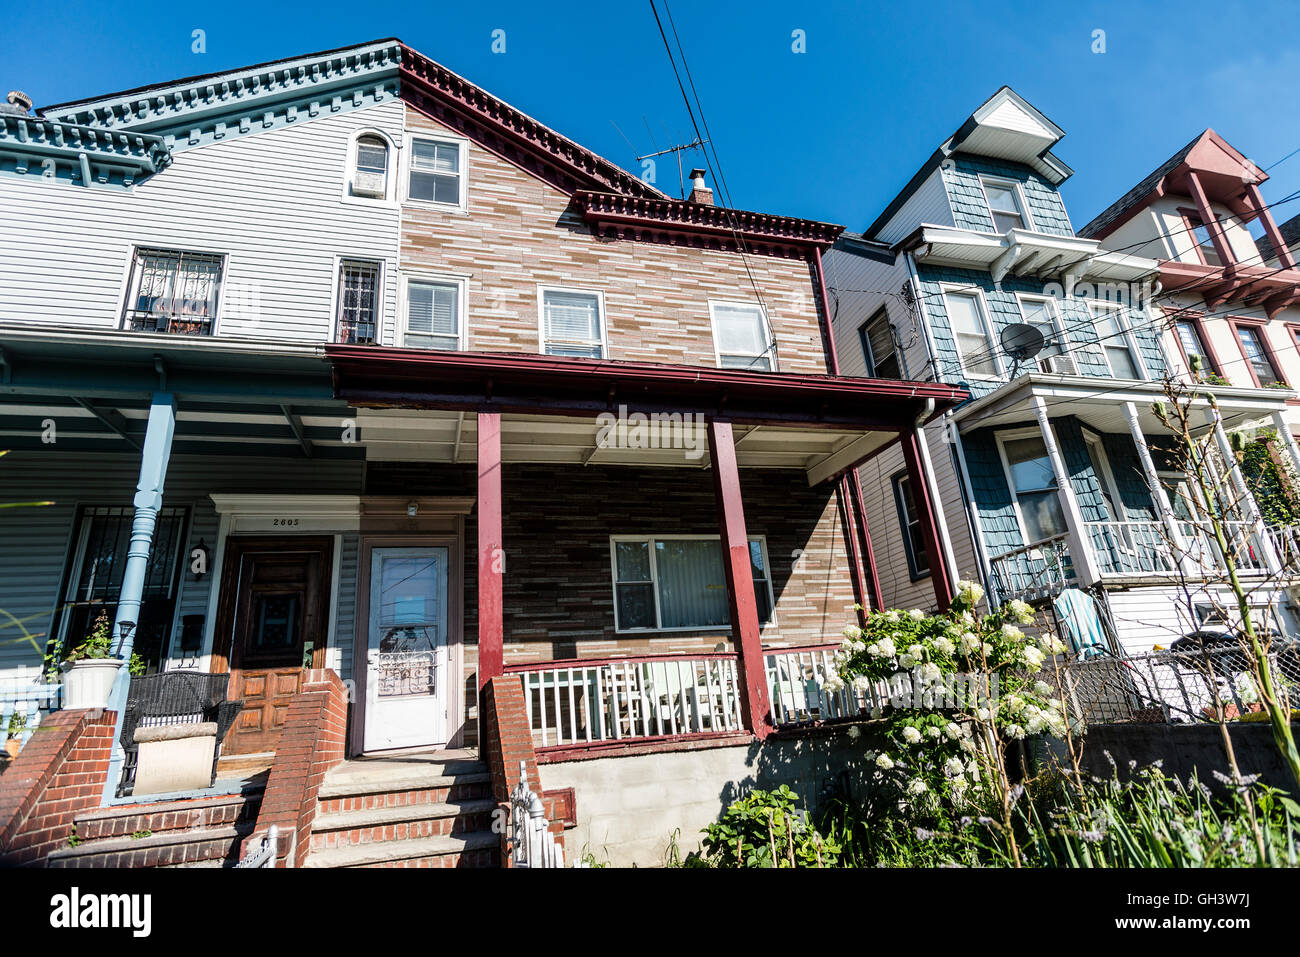 Astoria, New York, USA - 3 August 2016 - Wood framed single and two family homes in the Hallet's Cove section - Stock Image